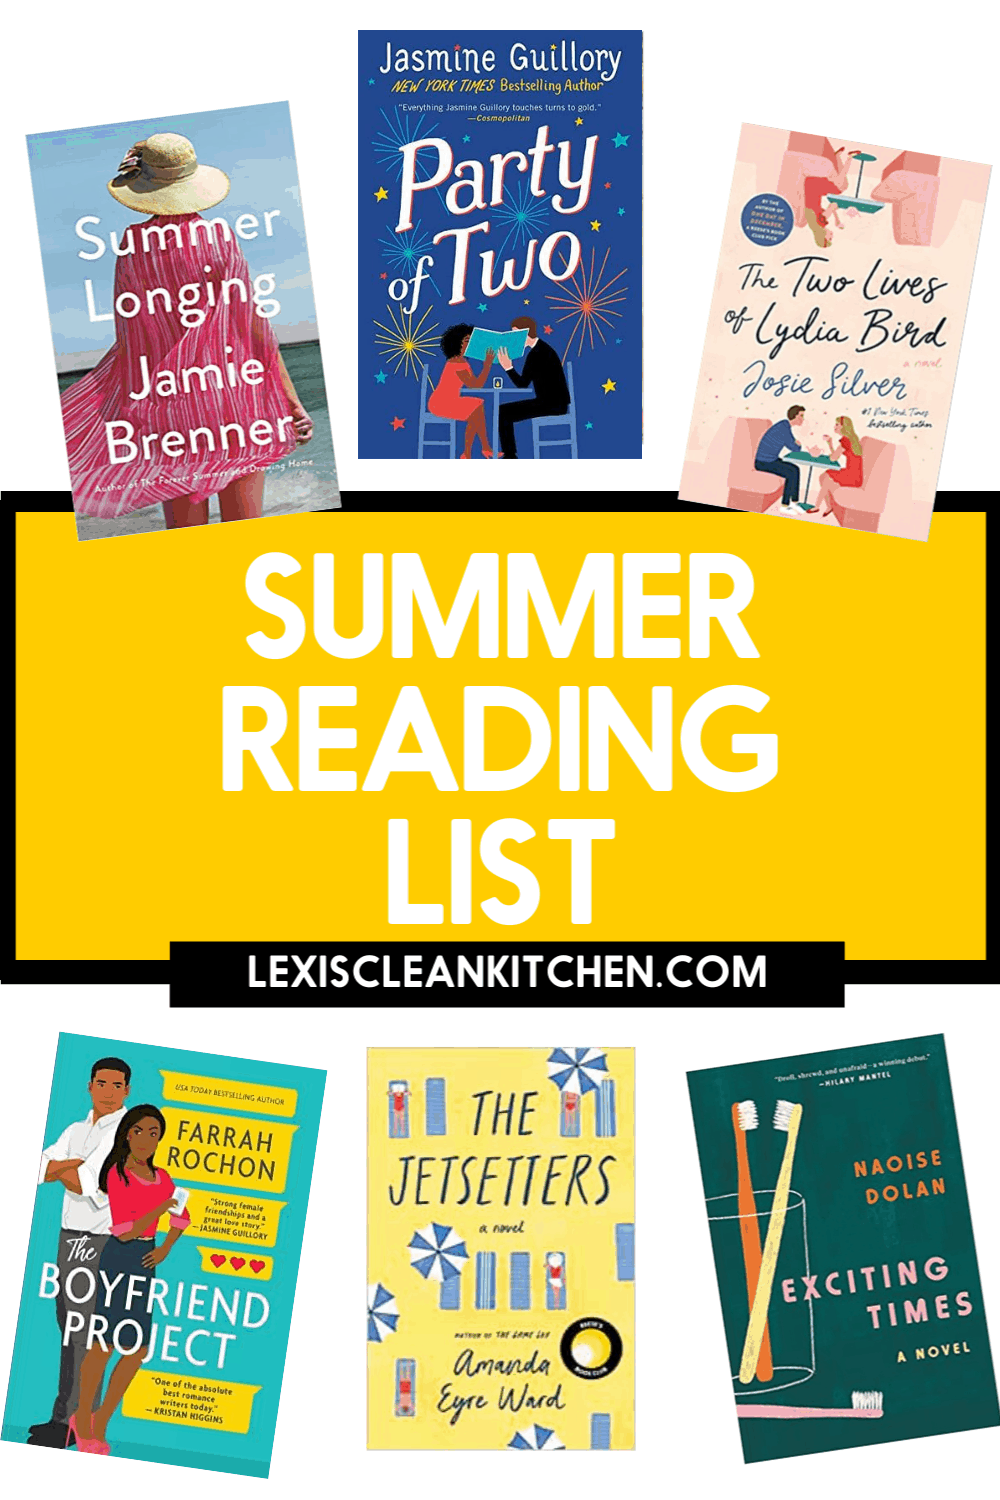 6 Book suggestions to read this summer.